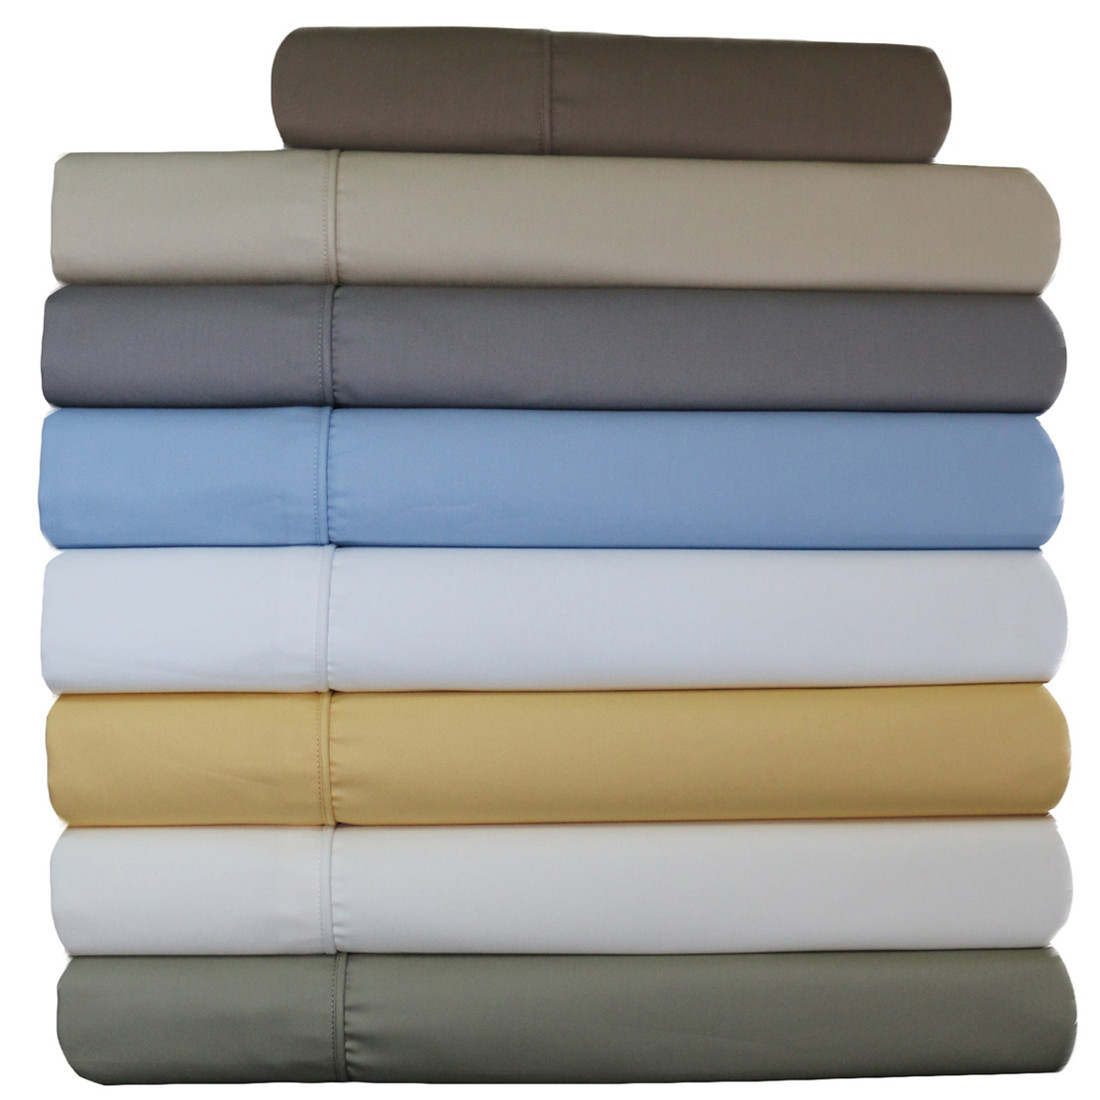 Wrinkle-Free Solid 650 Cotton California King & Queen Waterbed Sheets Un-attached /Colors